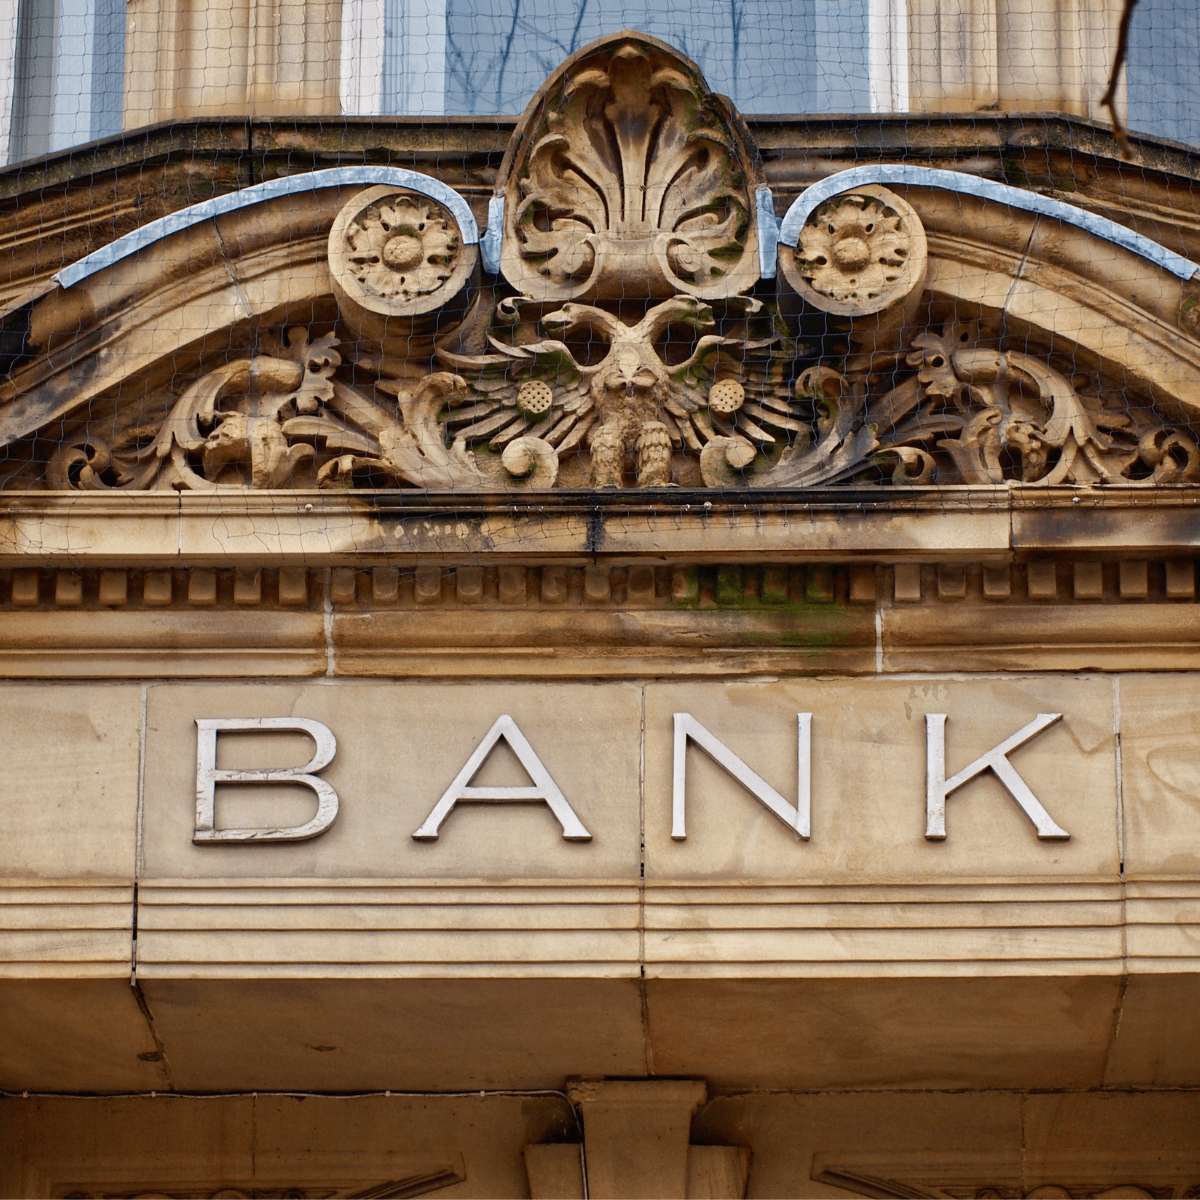 Lookout How Do Banks Prey On The Poor?